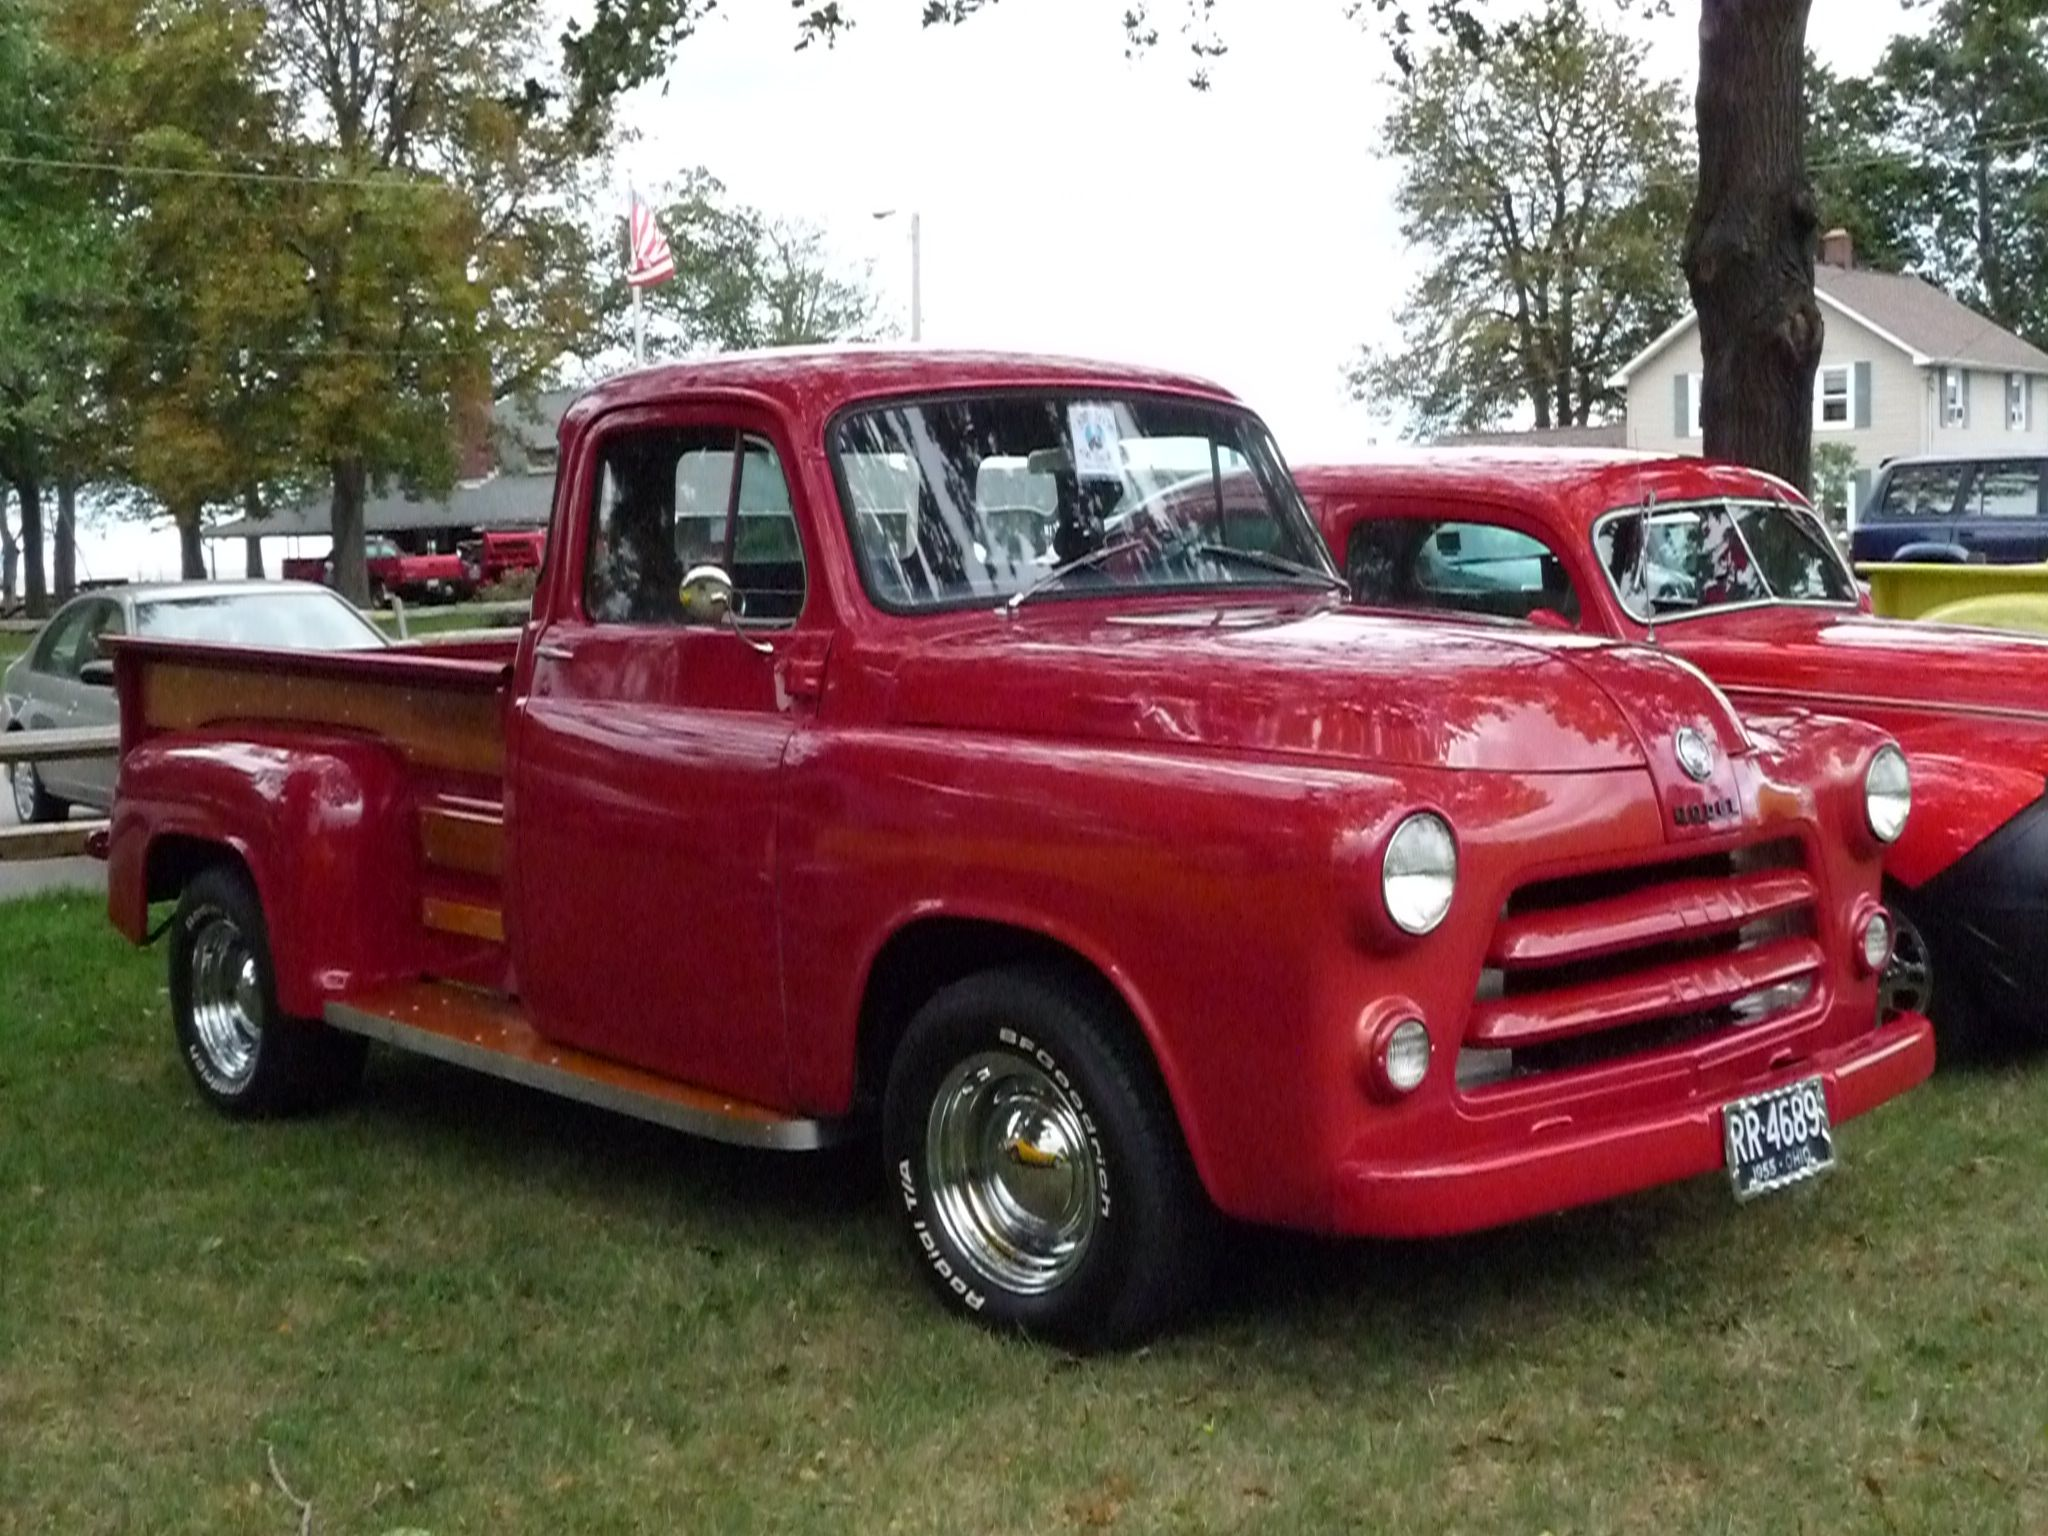 Pretty Old Cars | Cars, Sweet cars and Dodge trucks